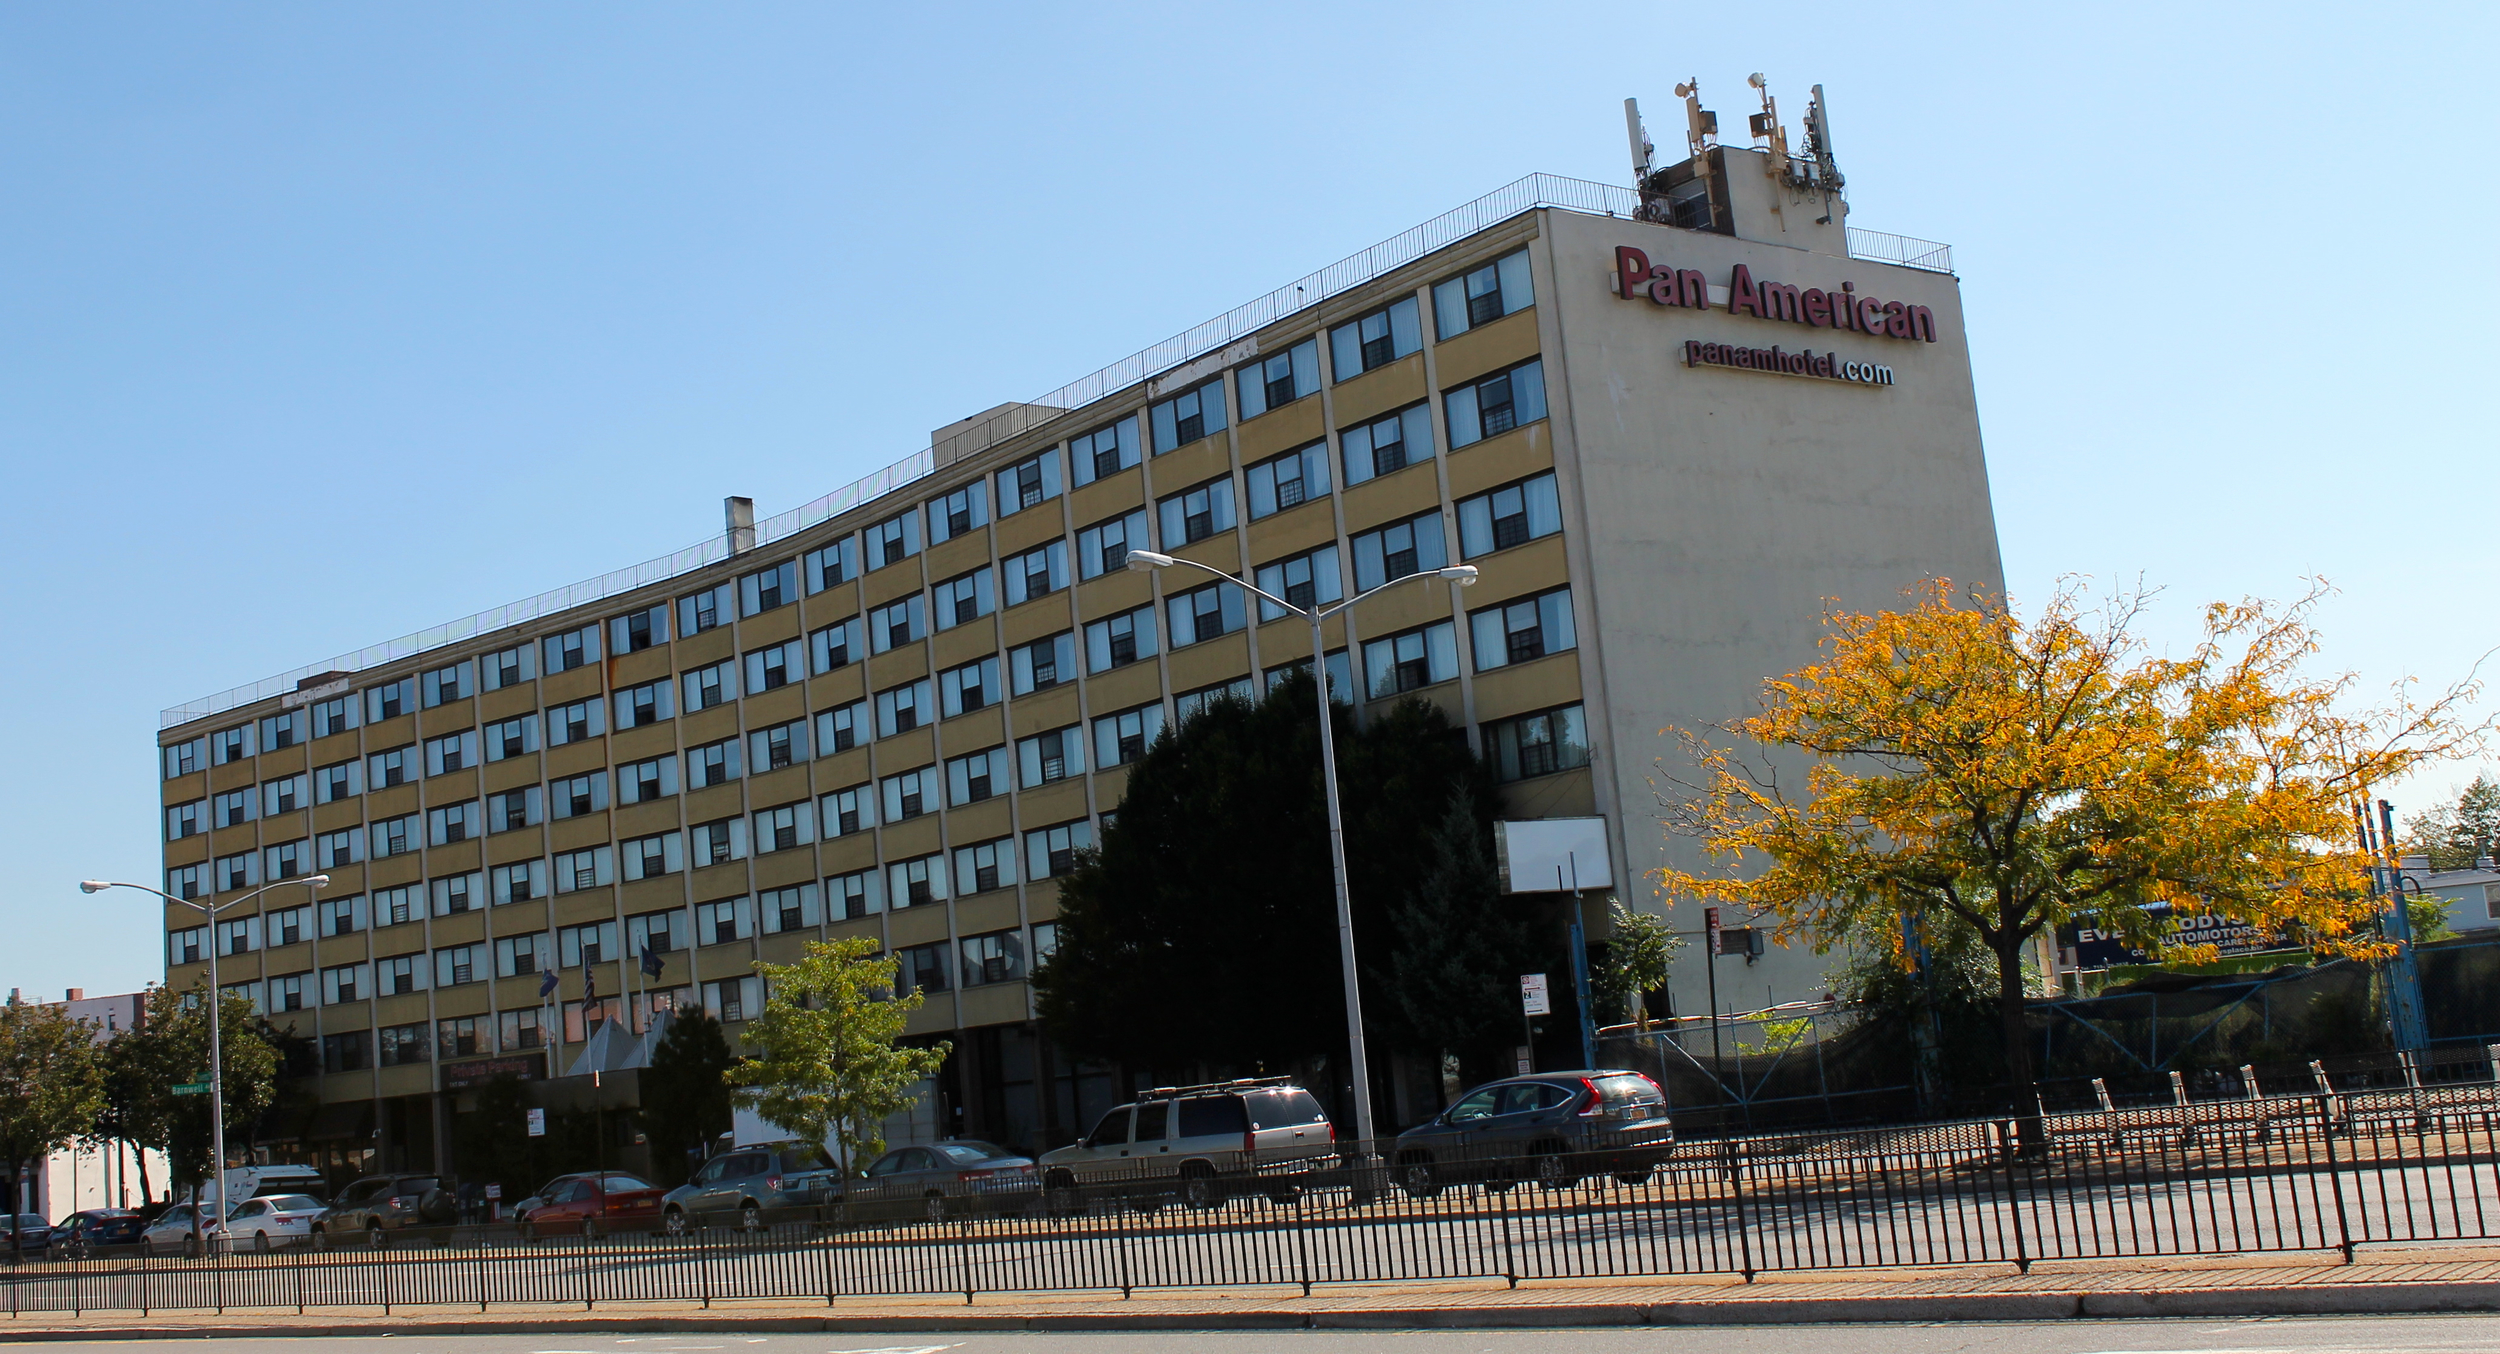 There is such a shortage of homeless shelters that the de Blasio administration was compelled to convert an emptyhotel on Queens Boulevard into a shelter for homeless families. The Pan American Hotel, in Elmhurst, Queens, was photographed on October 3, 2014. Source : Louis Flores